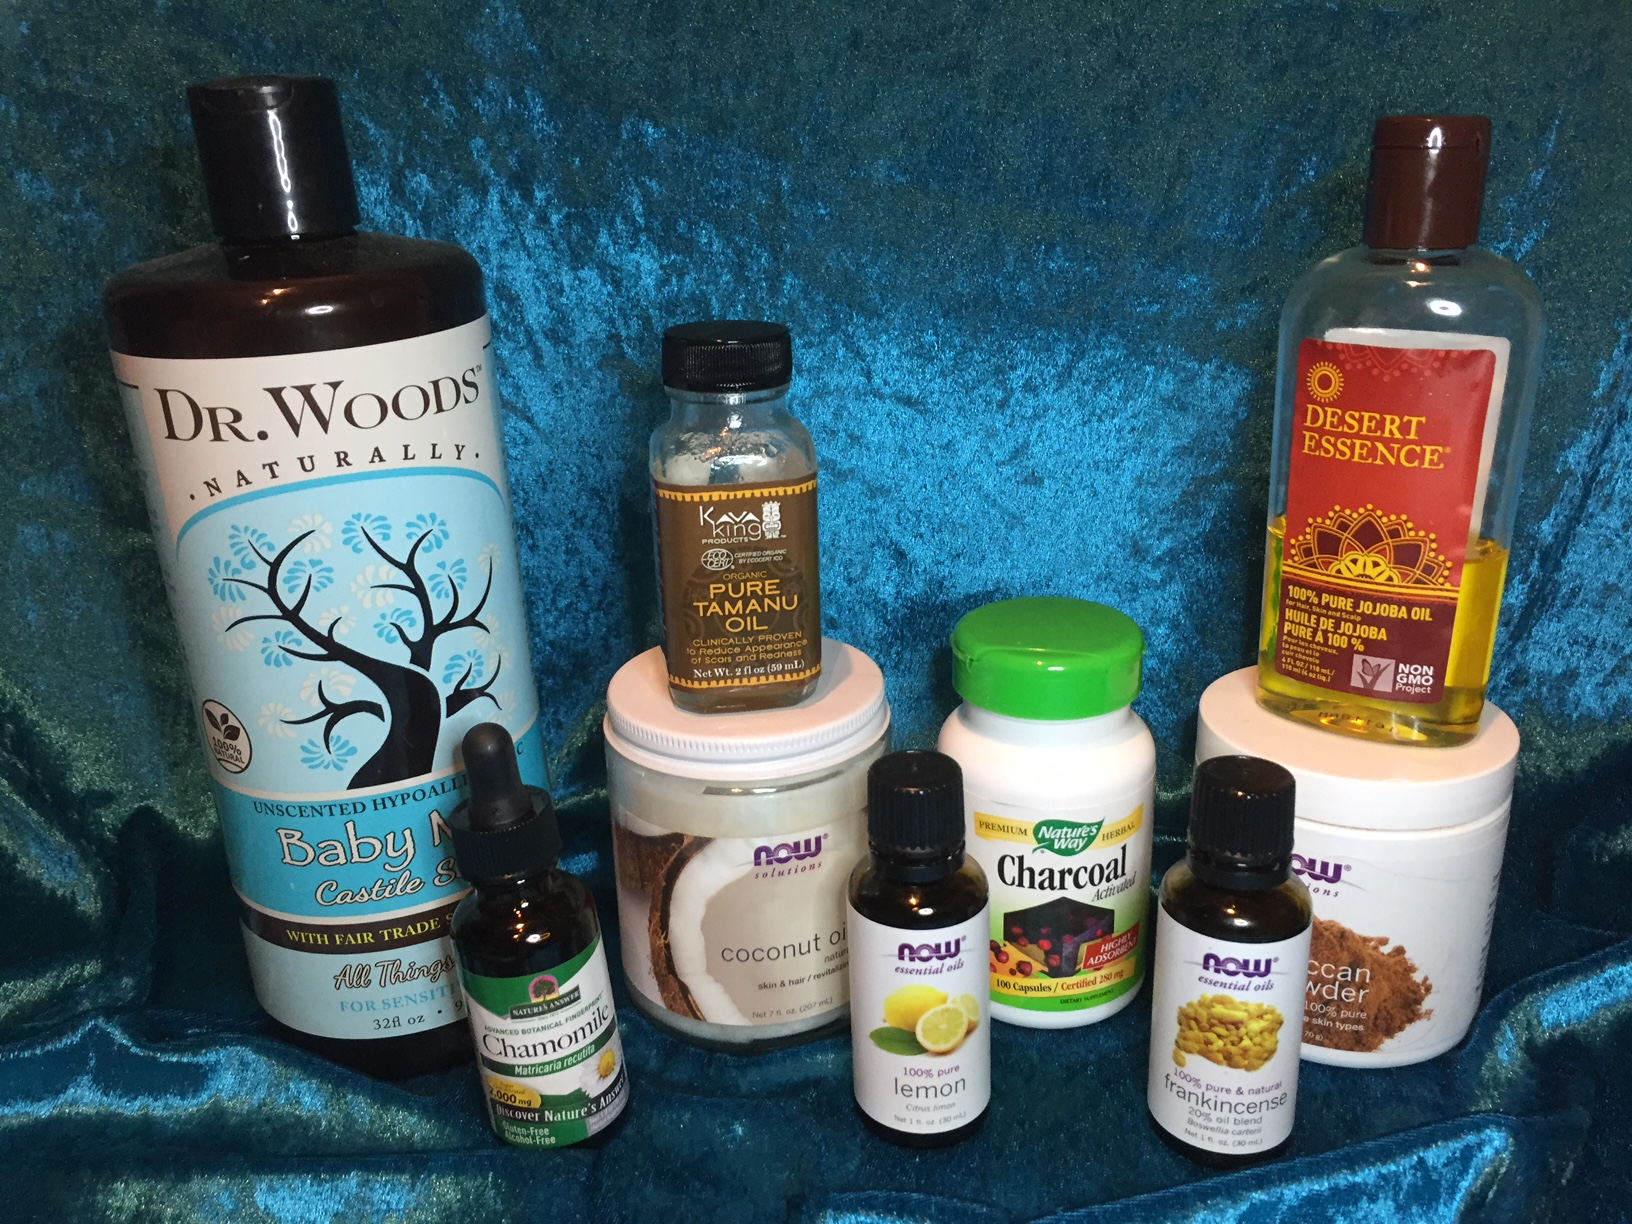 Some of the superstars of my all-natural skincare!